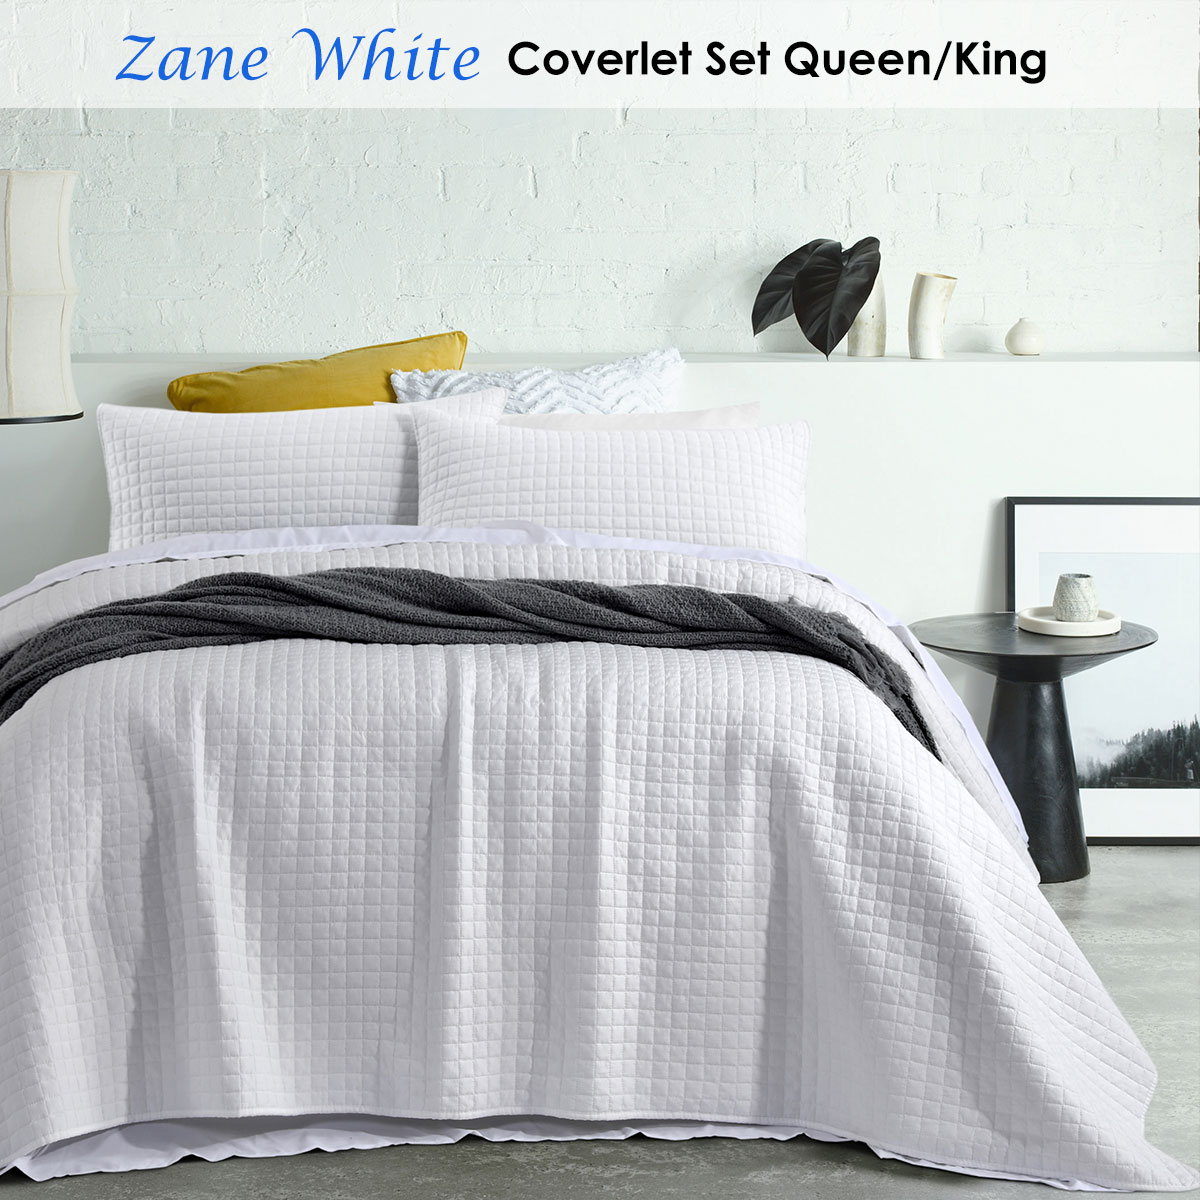 Zane White Coverlet Set Queen King By Accessorize 9330275071391 Ebay